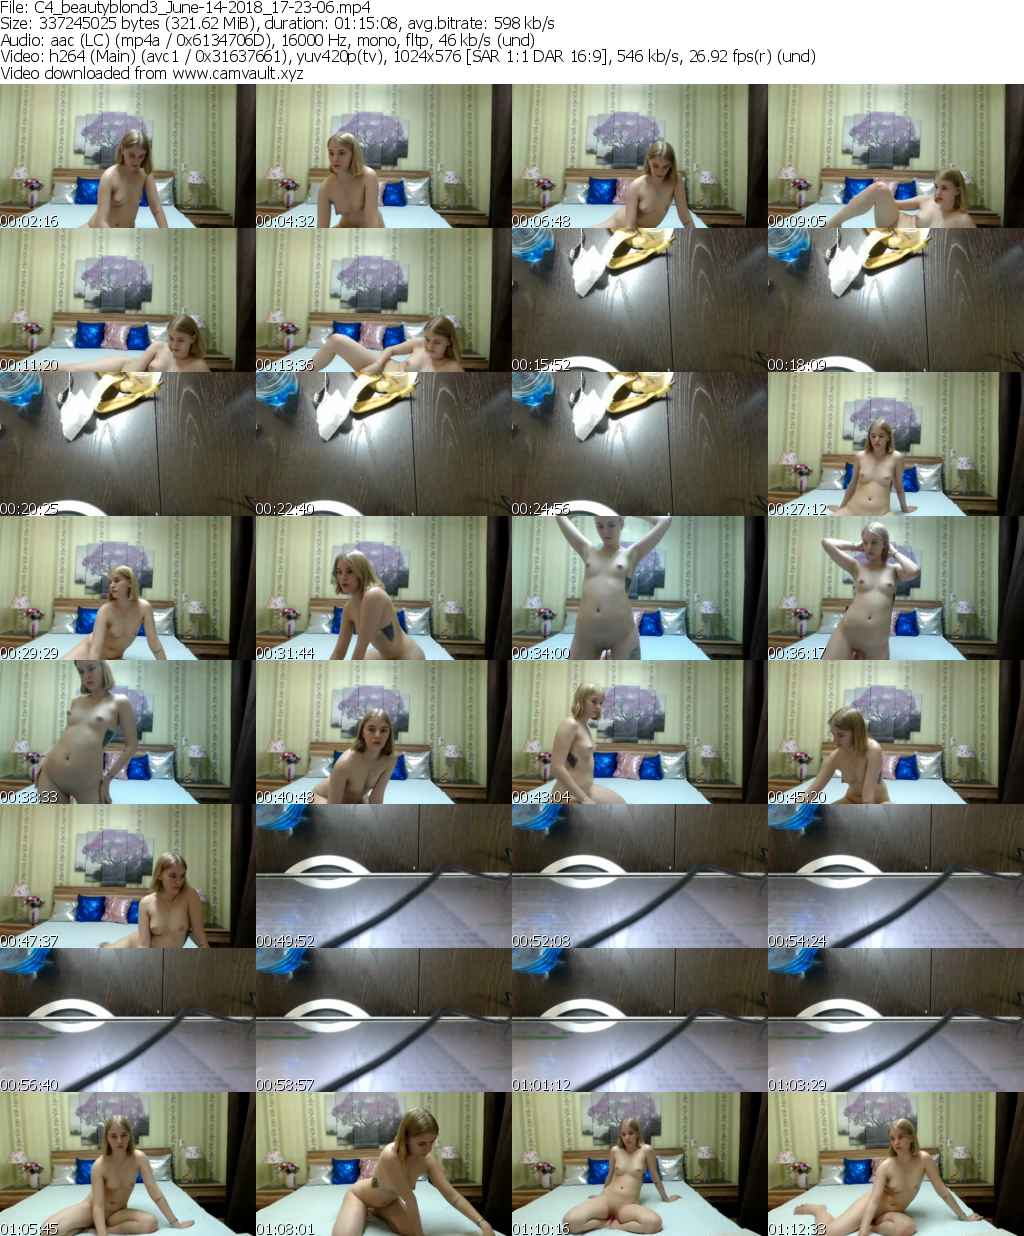 Video preview for model beautyblond3